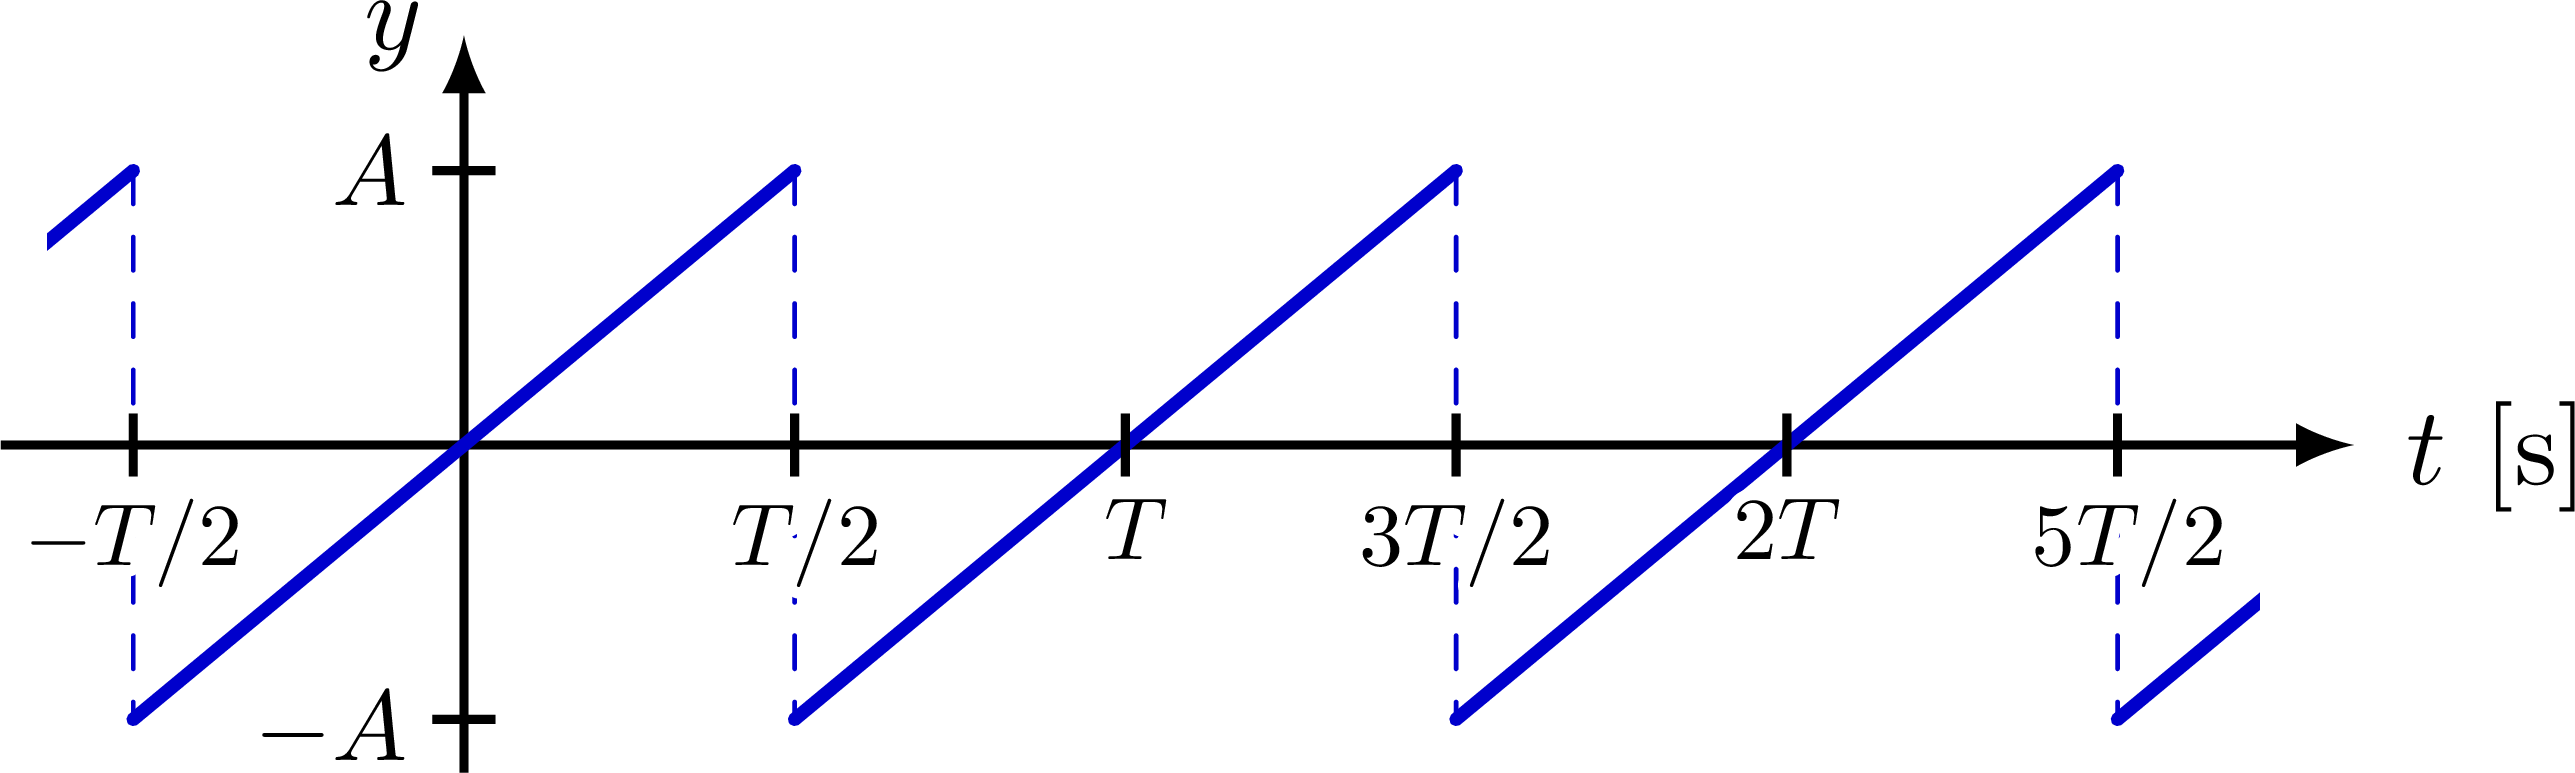 fourier_series-003.png